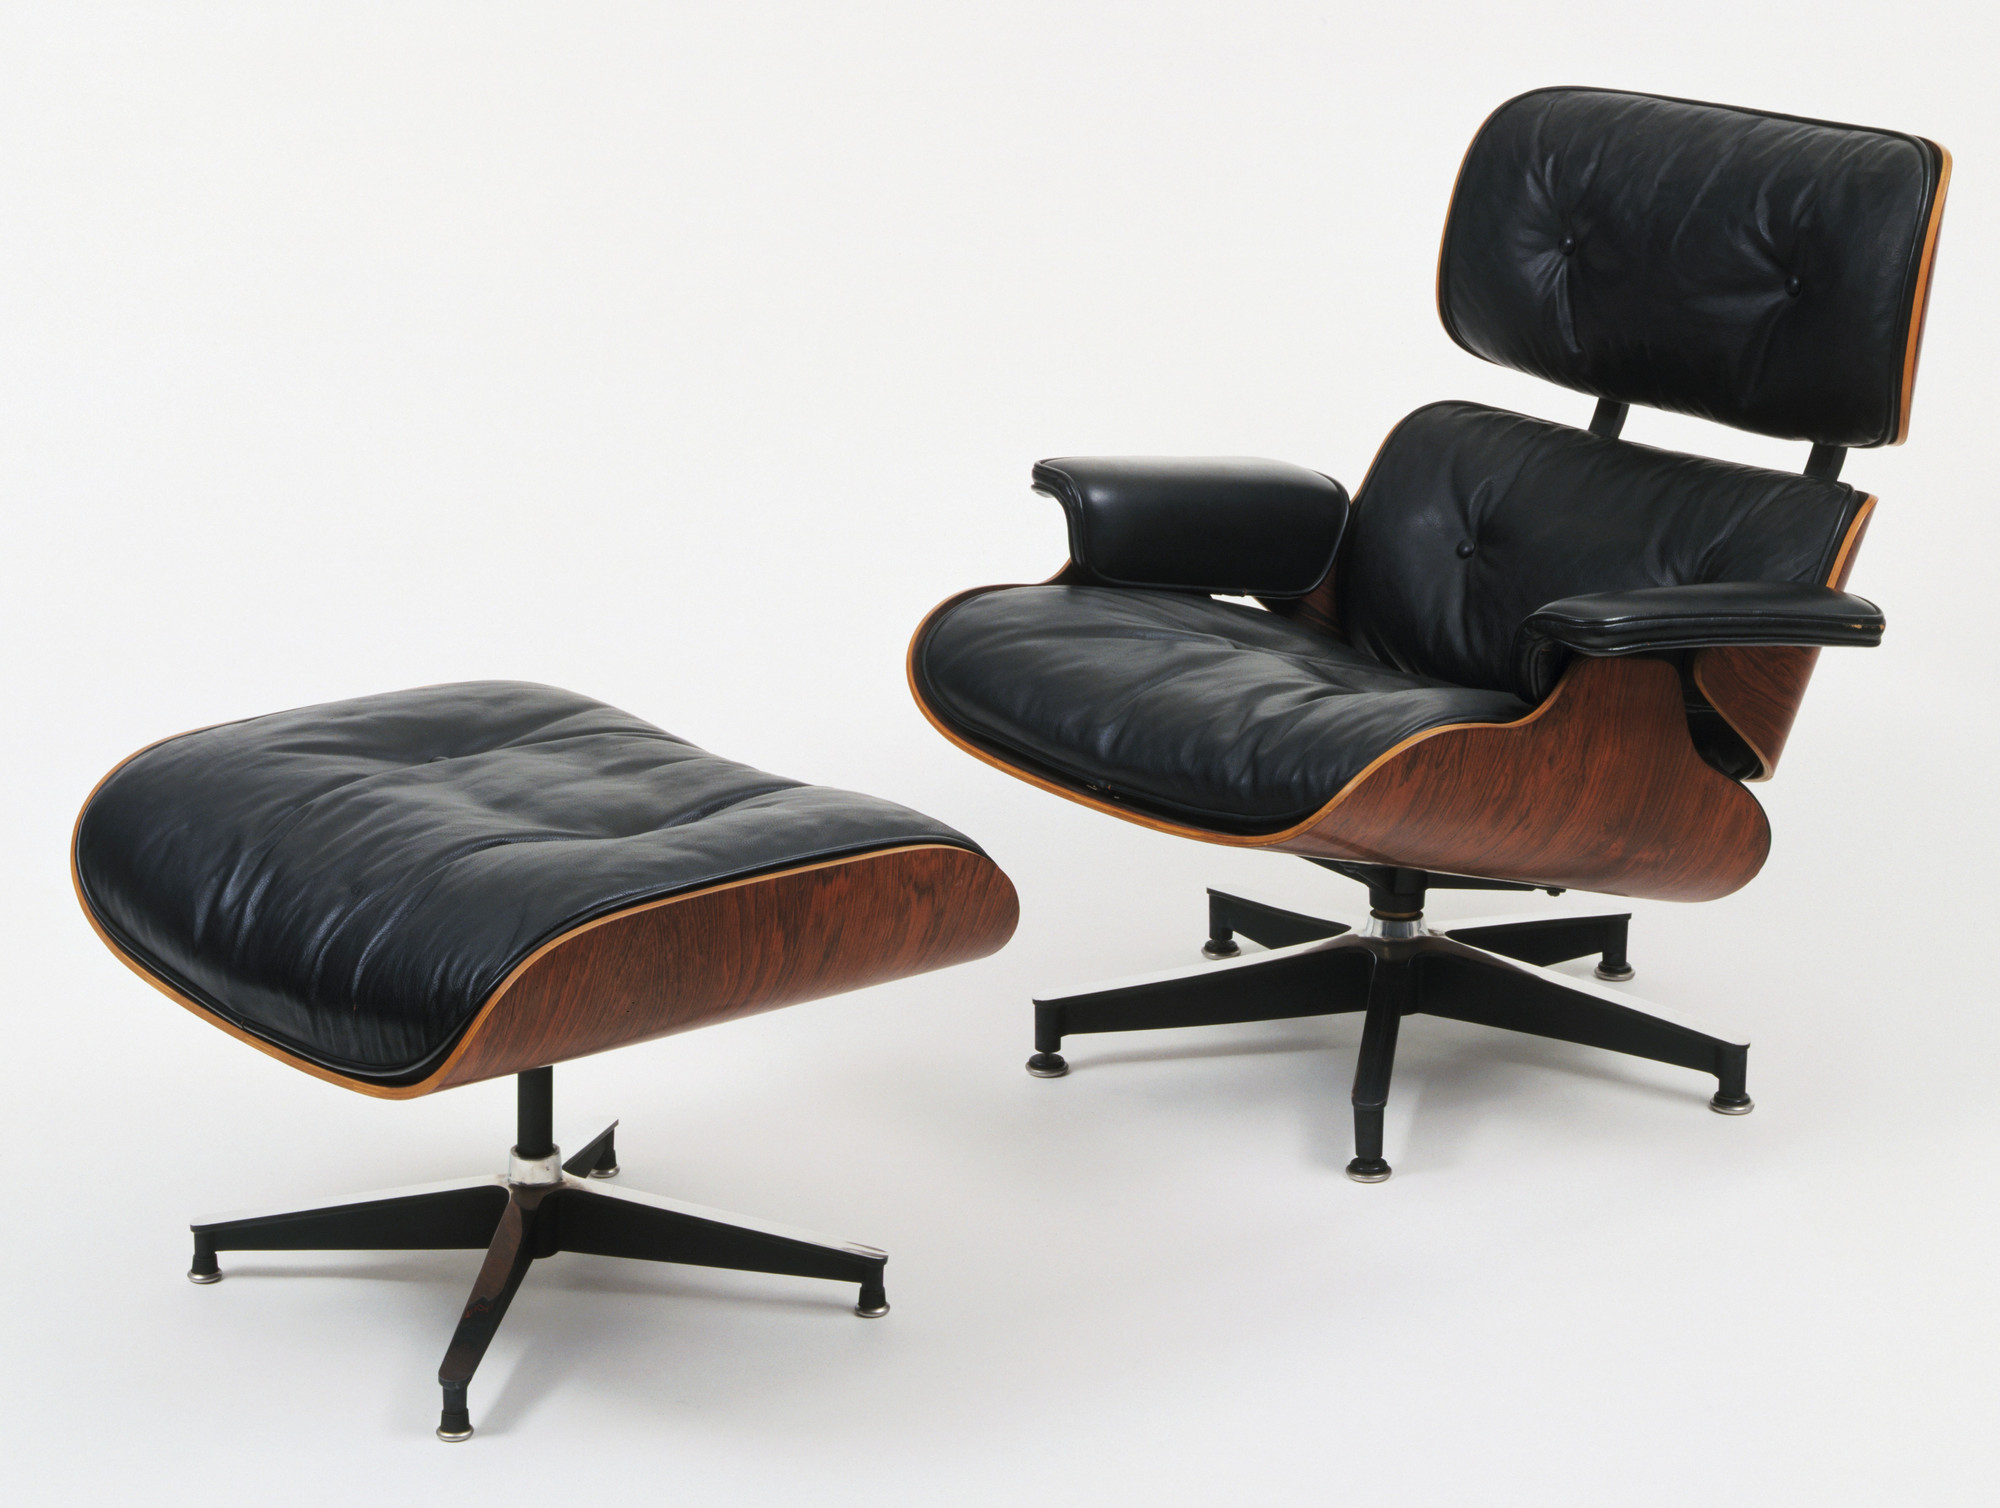 De Eames Stoel : Charles eames ray eames. lounge chair and ottoman. 1956 moma